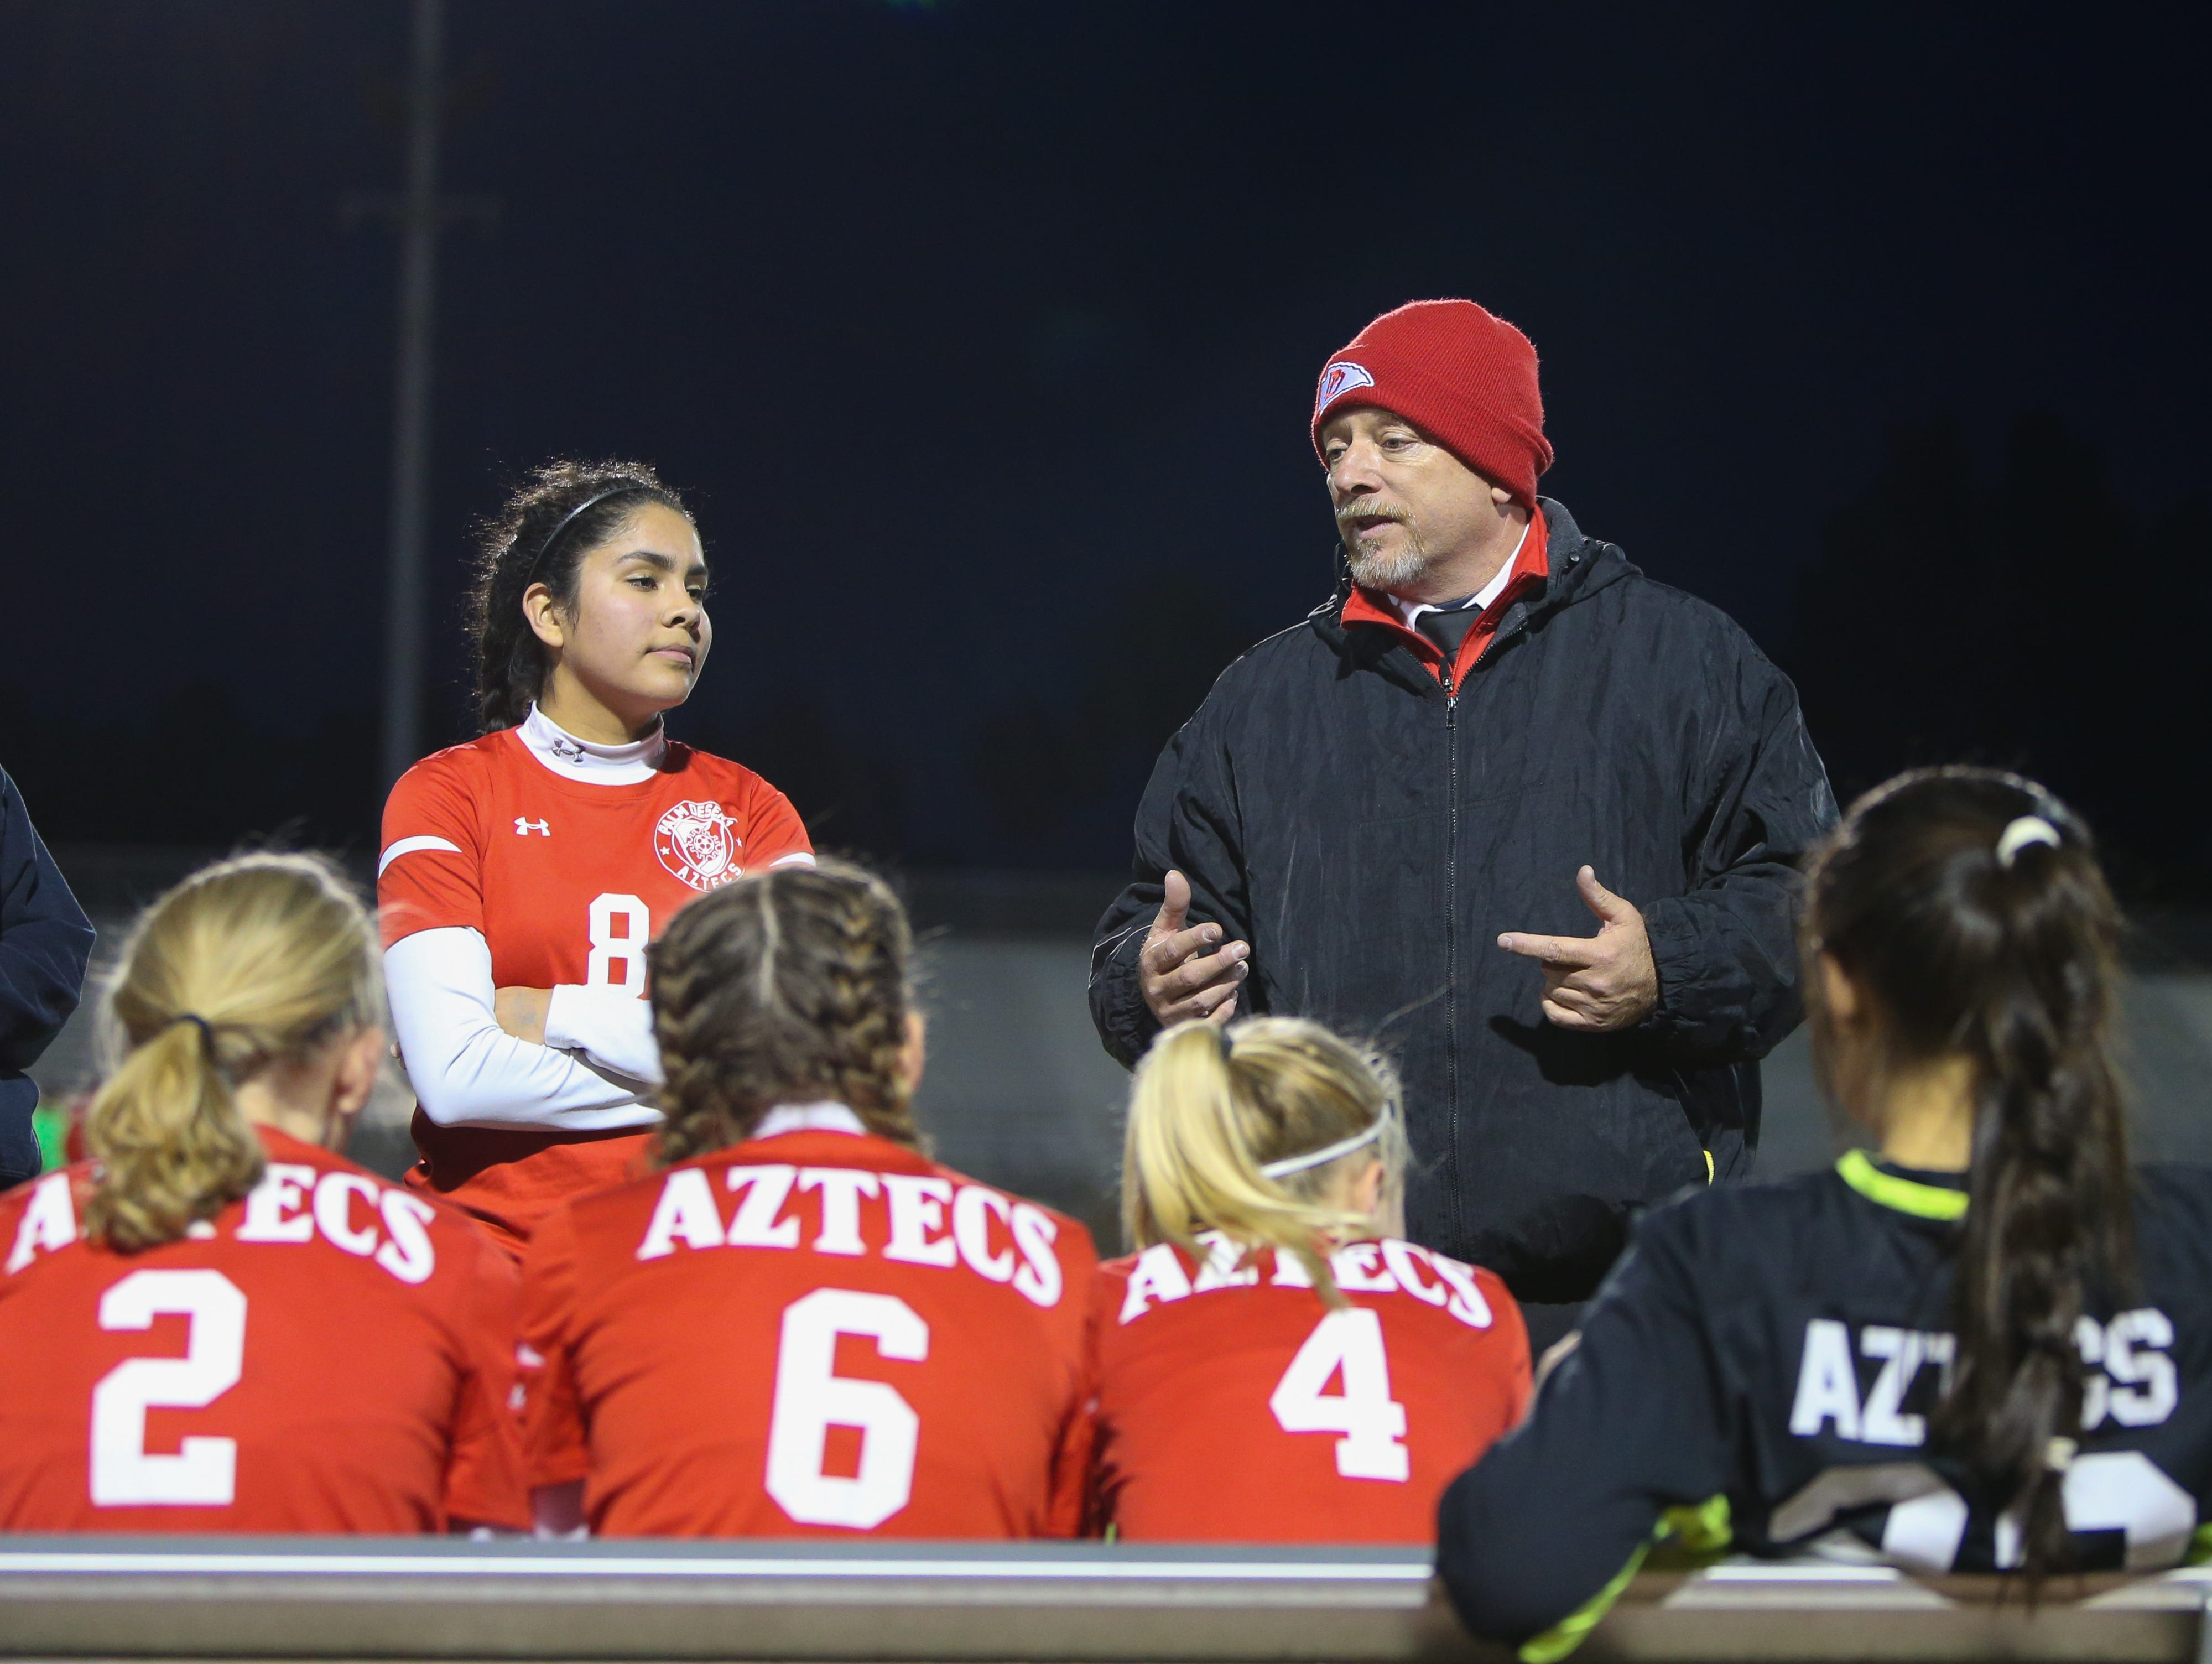 Chris Keuilian talks to his players in between break. The Palm Desert varsity soccer team won Wednesday's home playoff game against Miller by a score of 5-1.